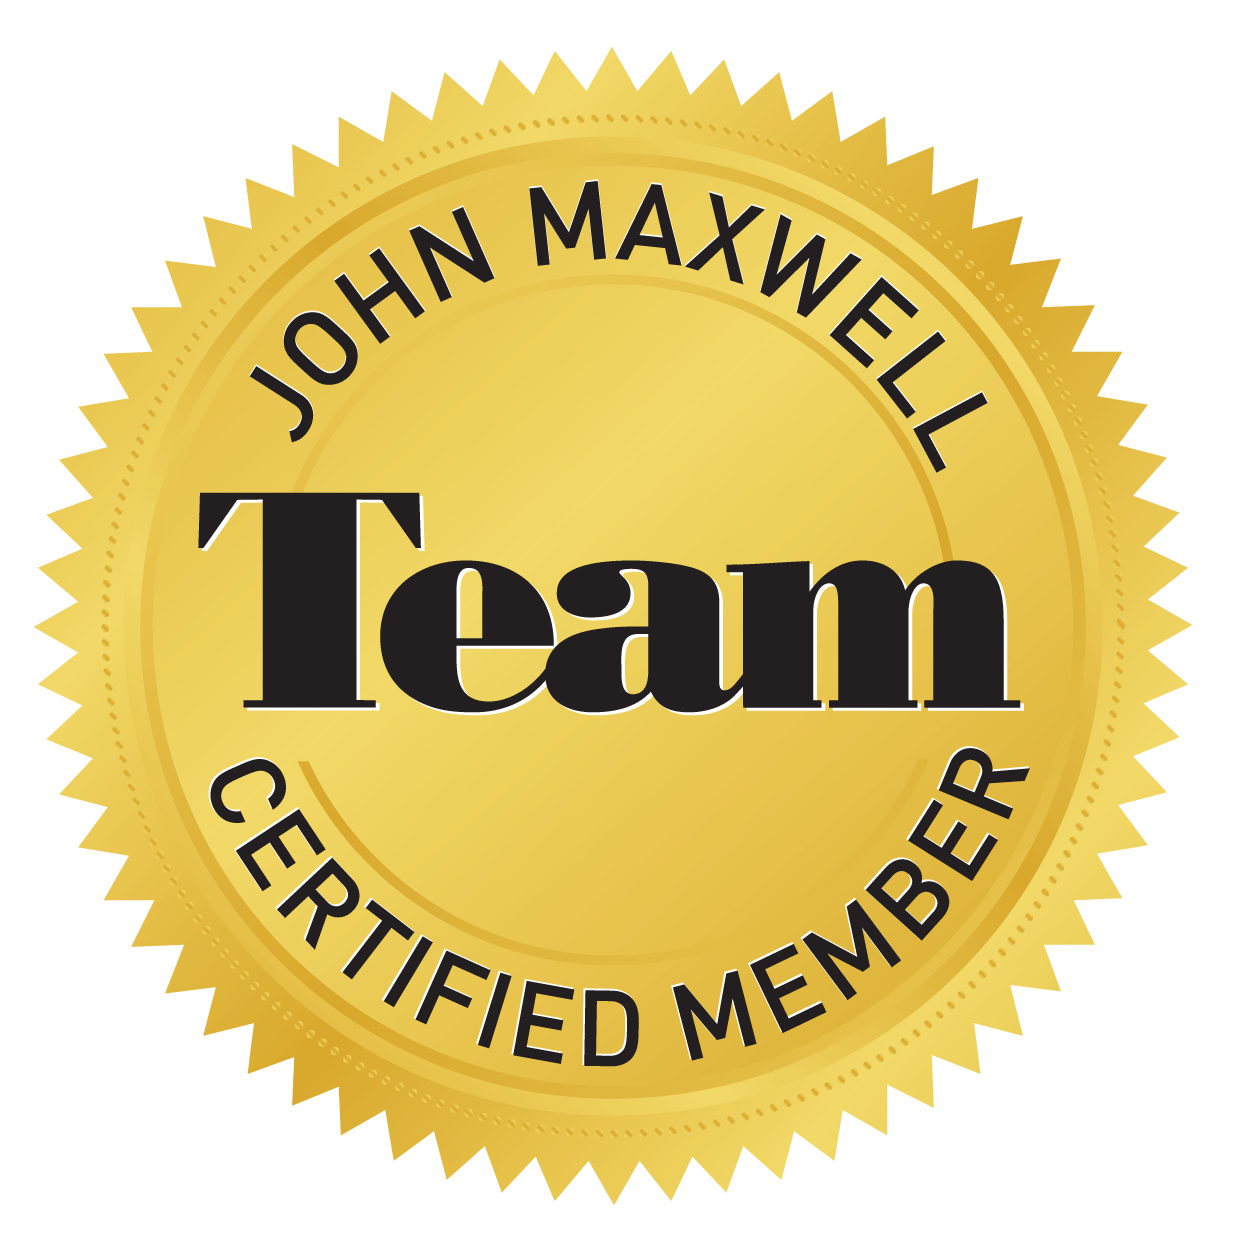 "Dr. <span itemprop=""name"">Helen Usera</span> is a John Maxwell Team Certified Speaker"